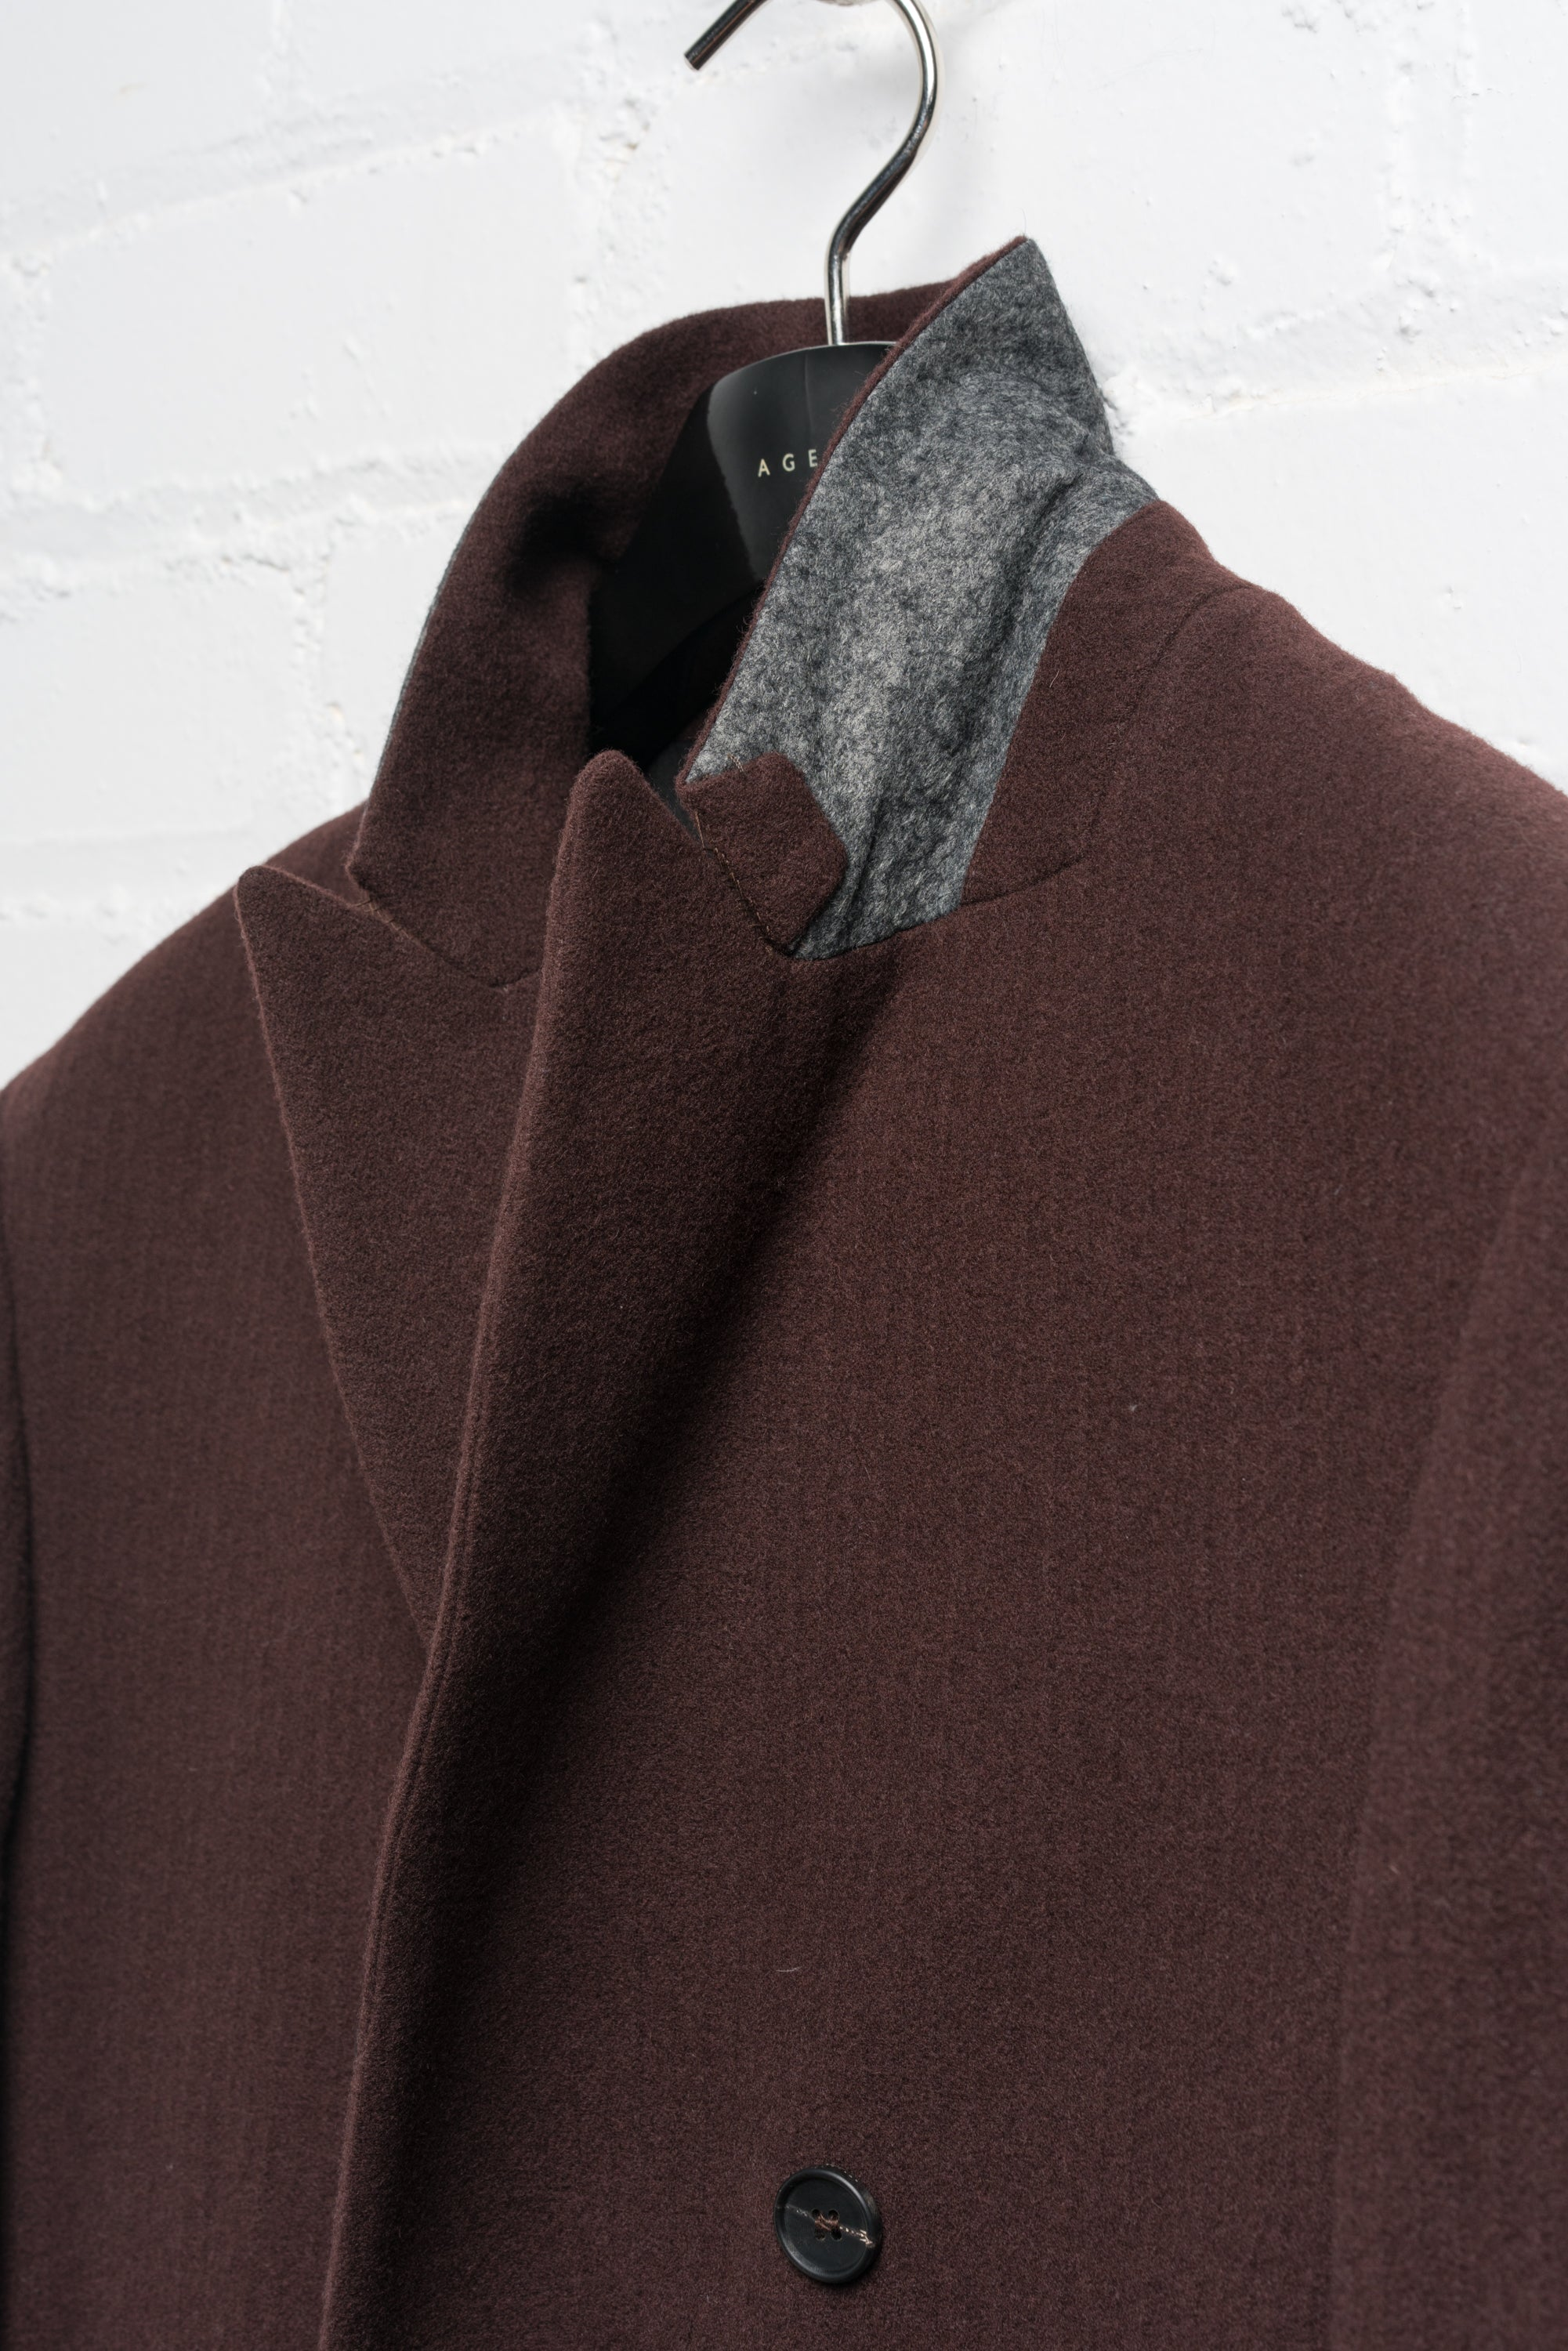 DOUBLE BREASTED WOOL JACKET IN BORDEAUX BRUSHED TWILL